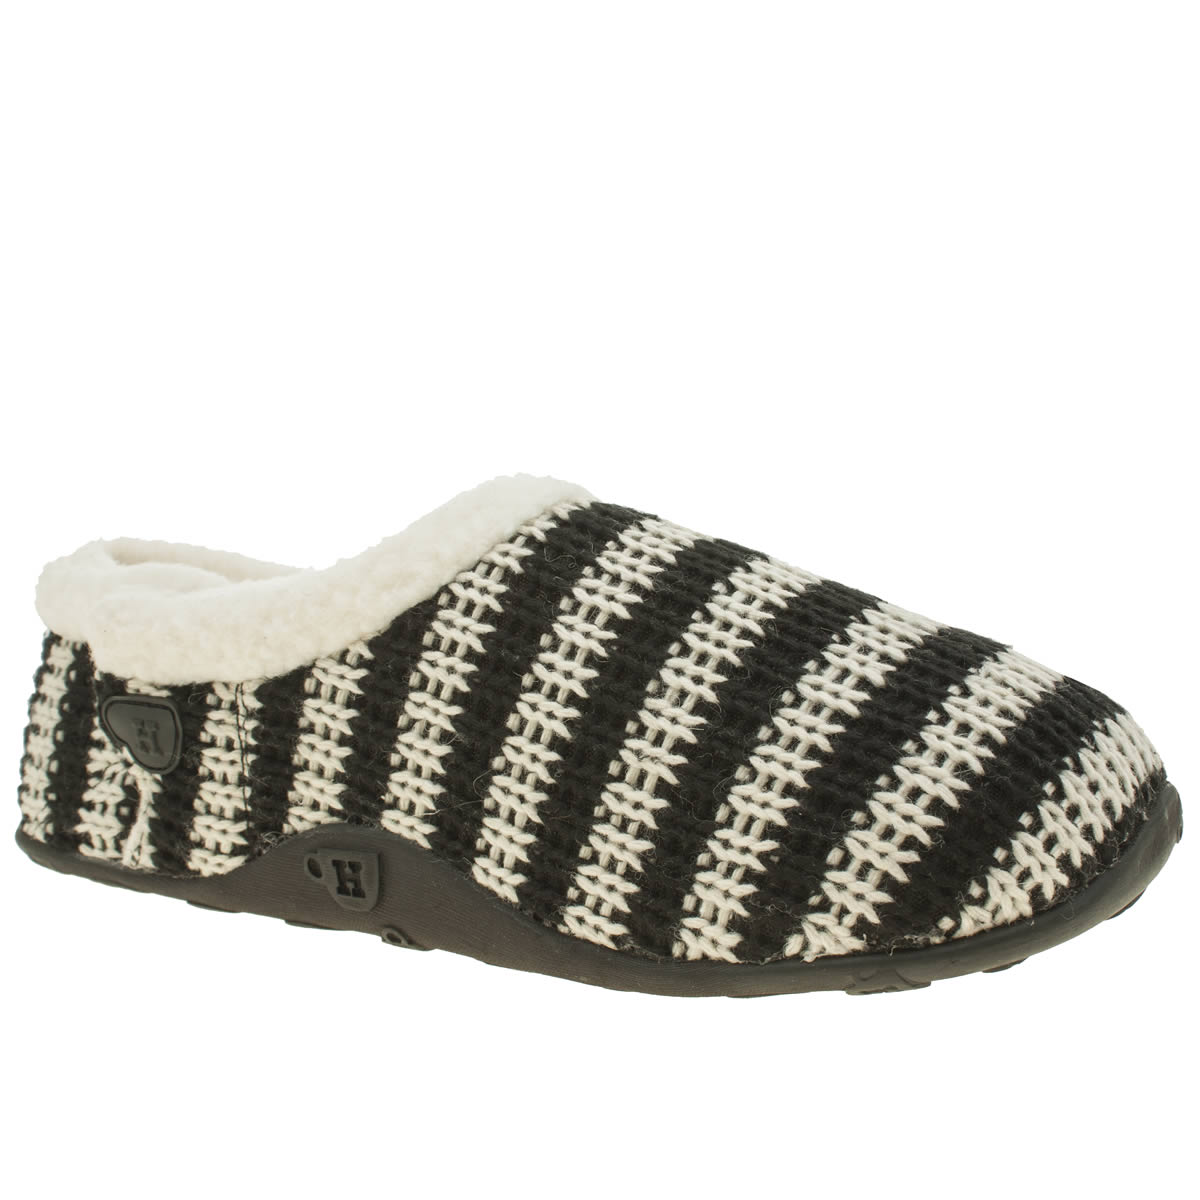 Homeys Homeys Black & White Barney Slippers